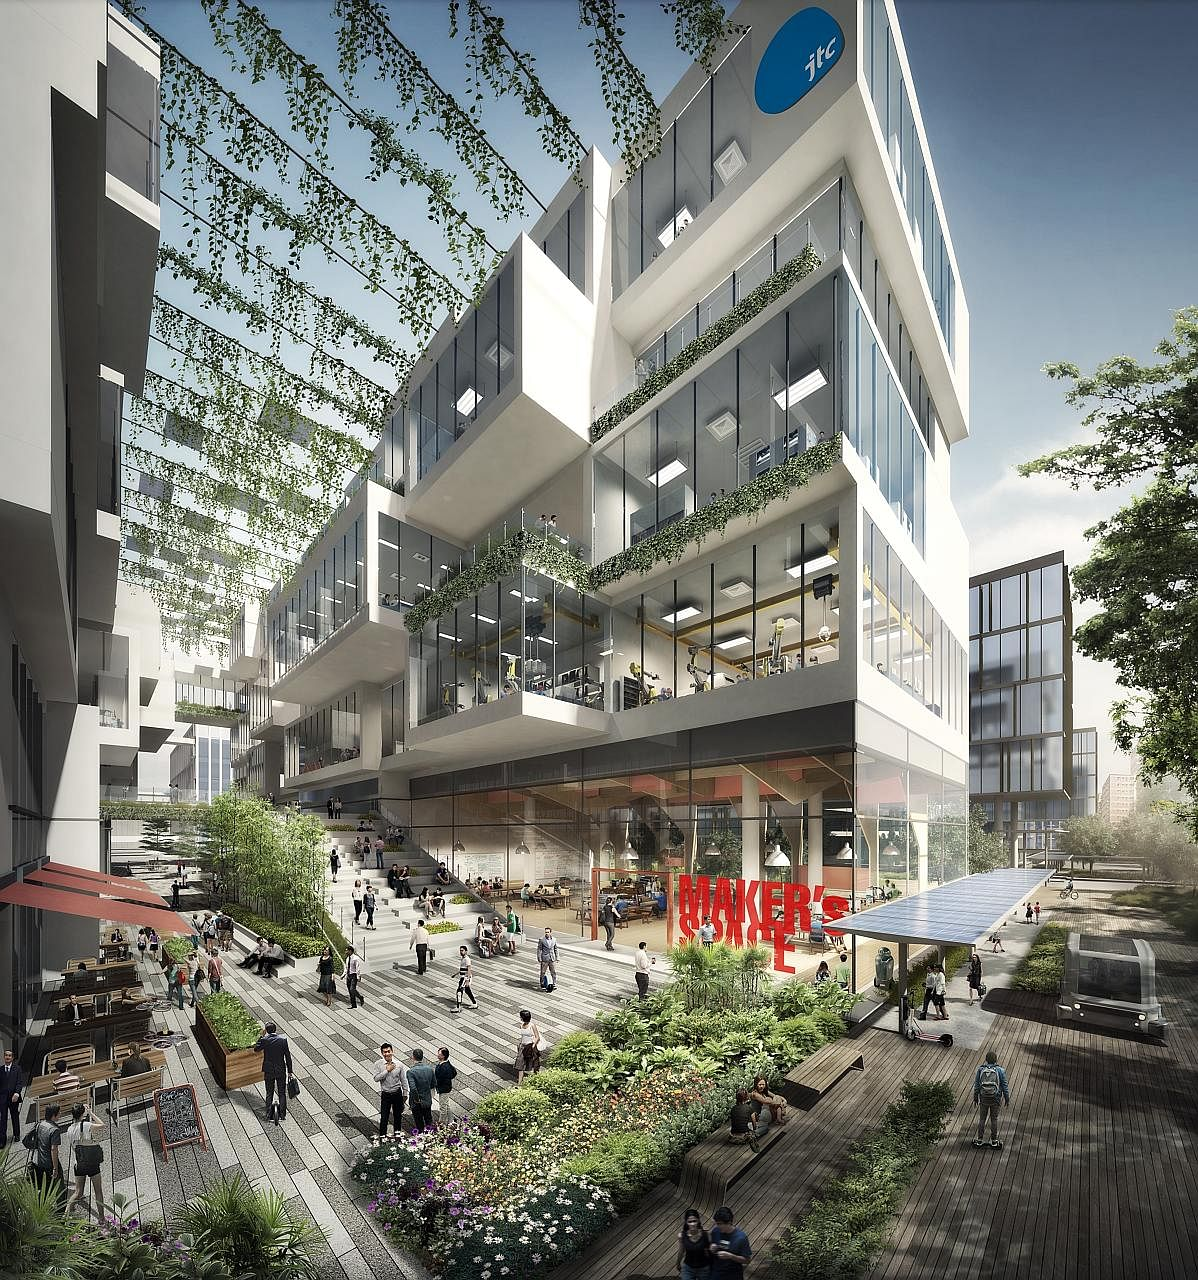 Jurong to be 'industrial park of the future', Property News & Top